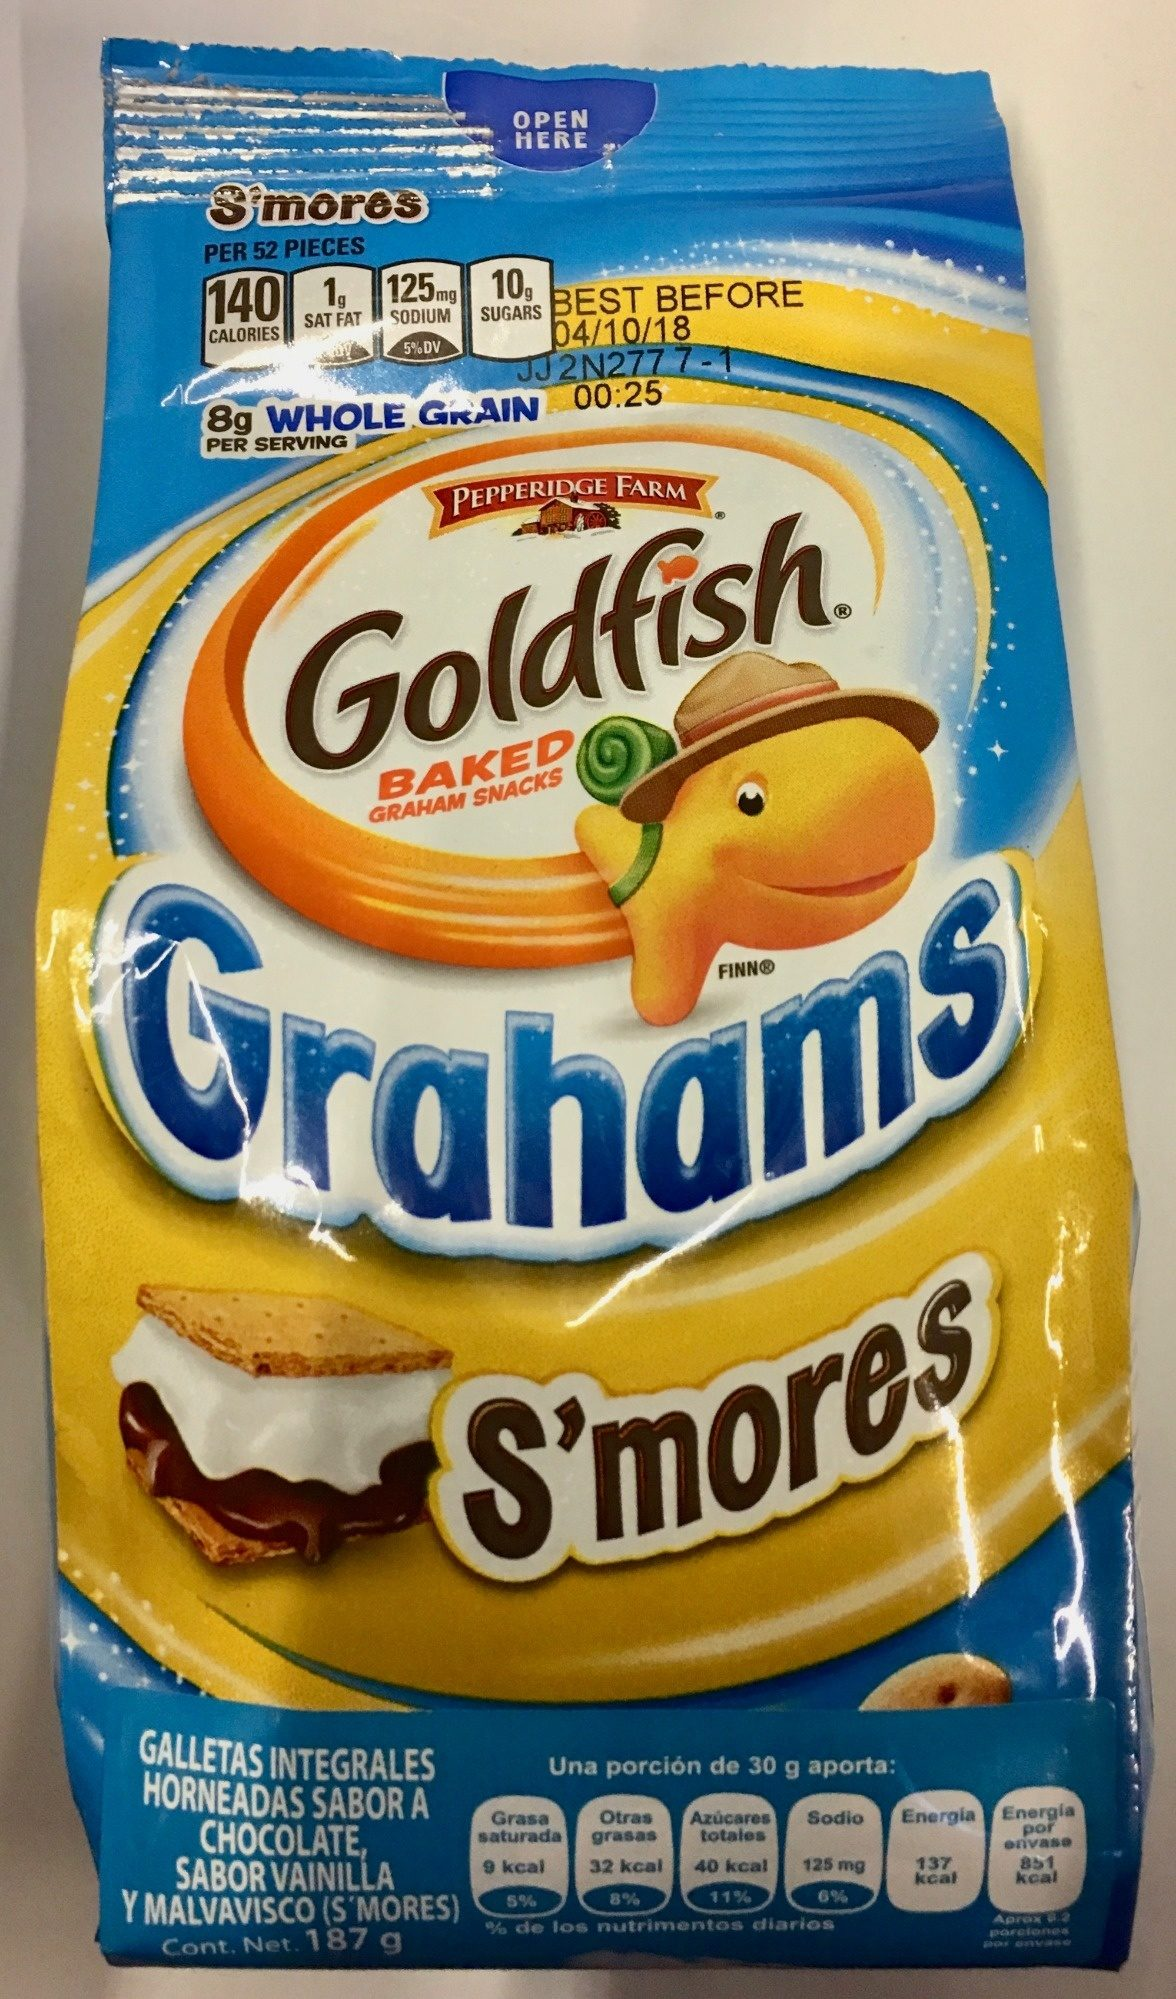 Goldfish grahams s'mores - Product - es